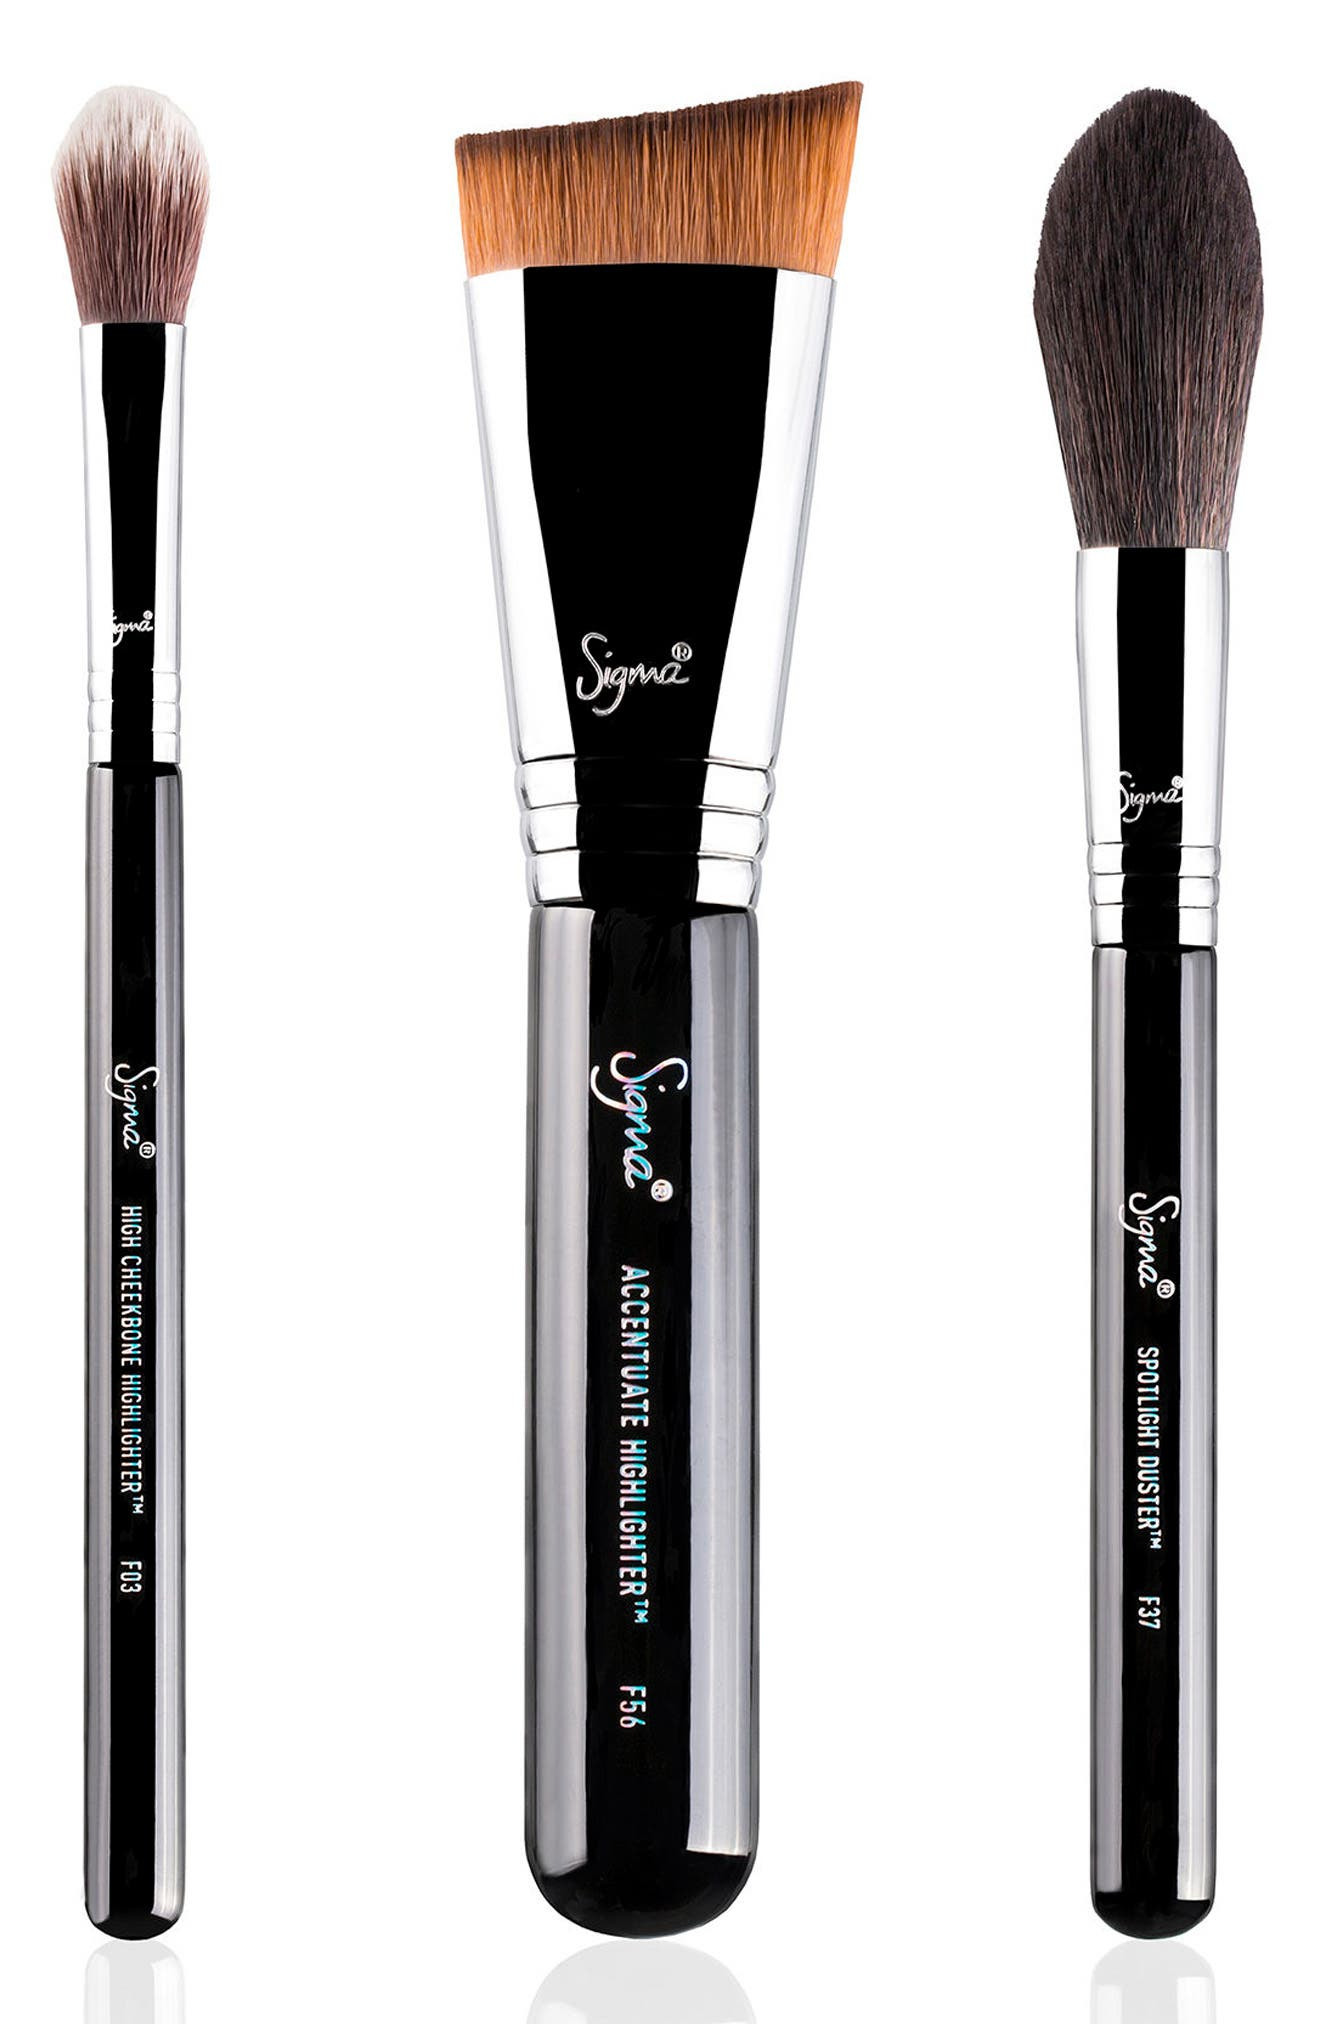 Sigma Beauty Highlight Expert Brush Set ($68 Value)